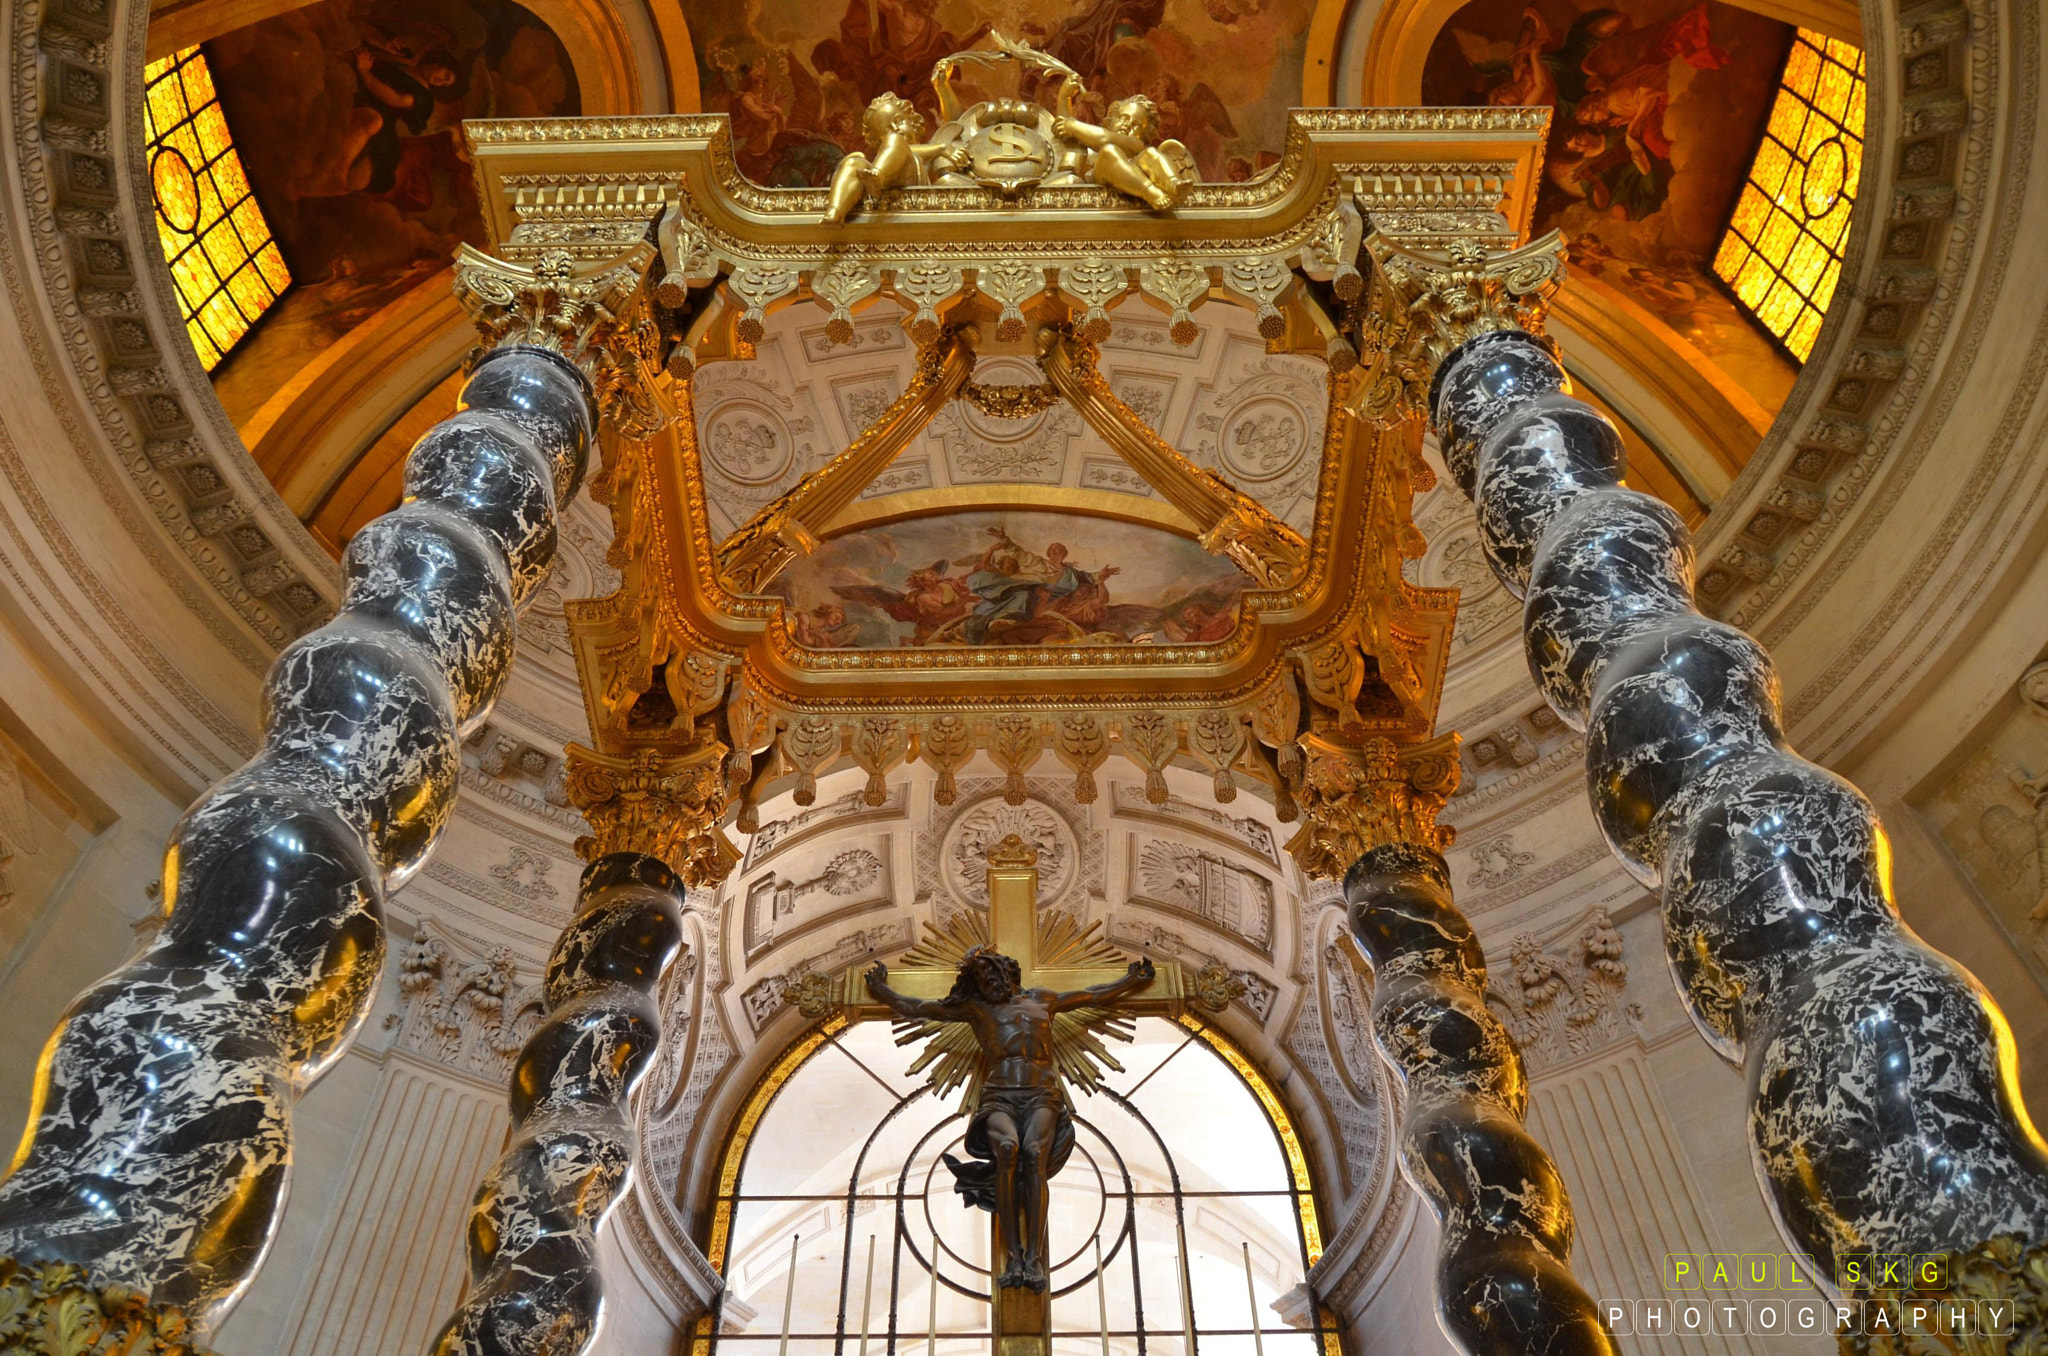 Photograph Invalides by Paul SKG on 500px